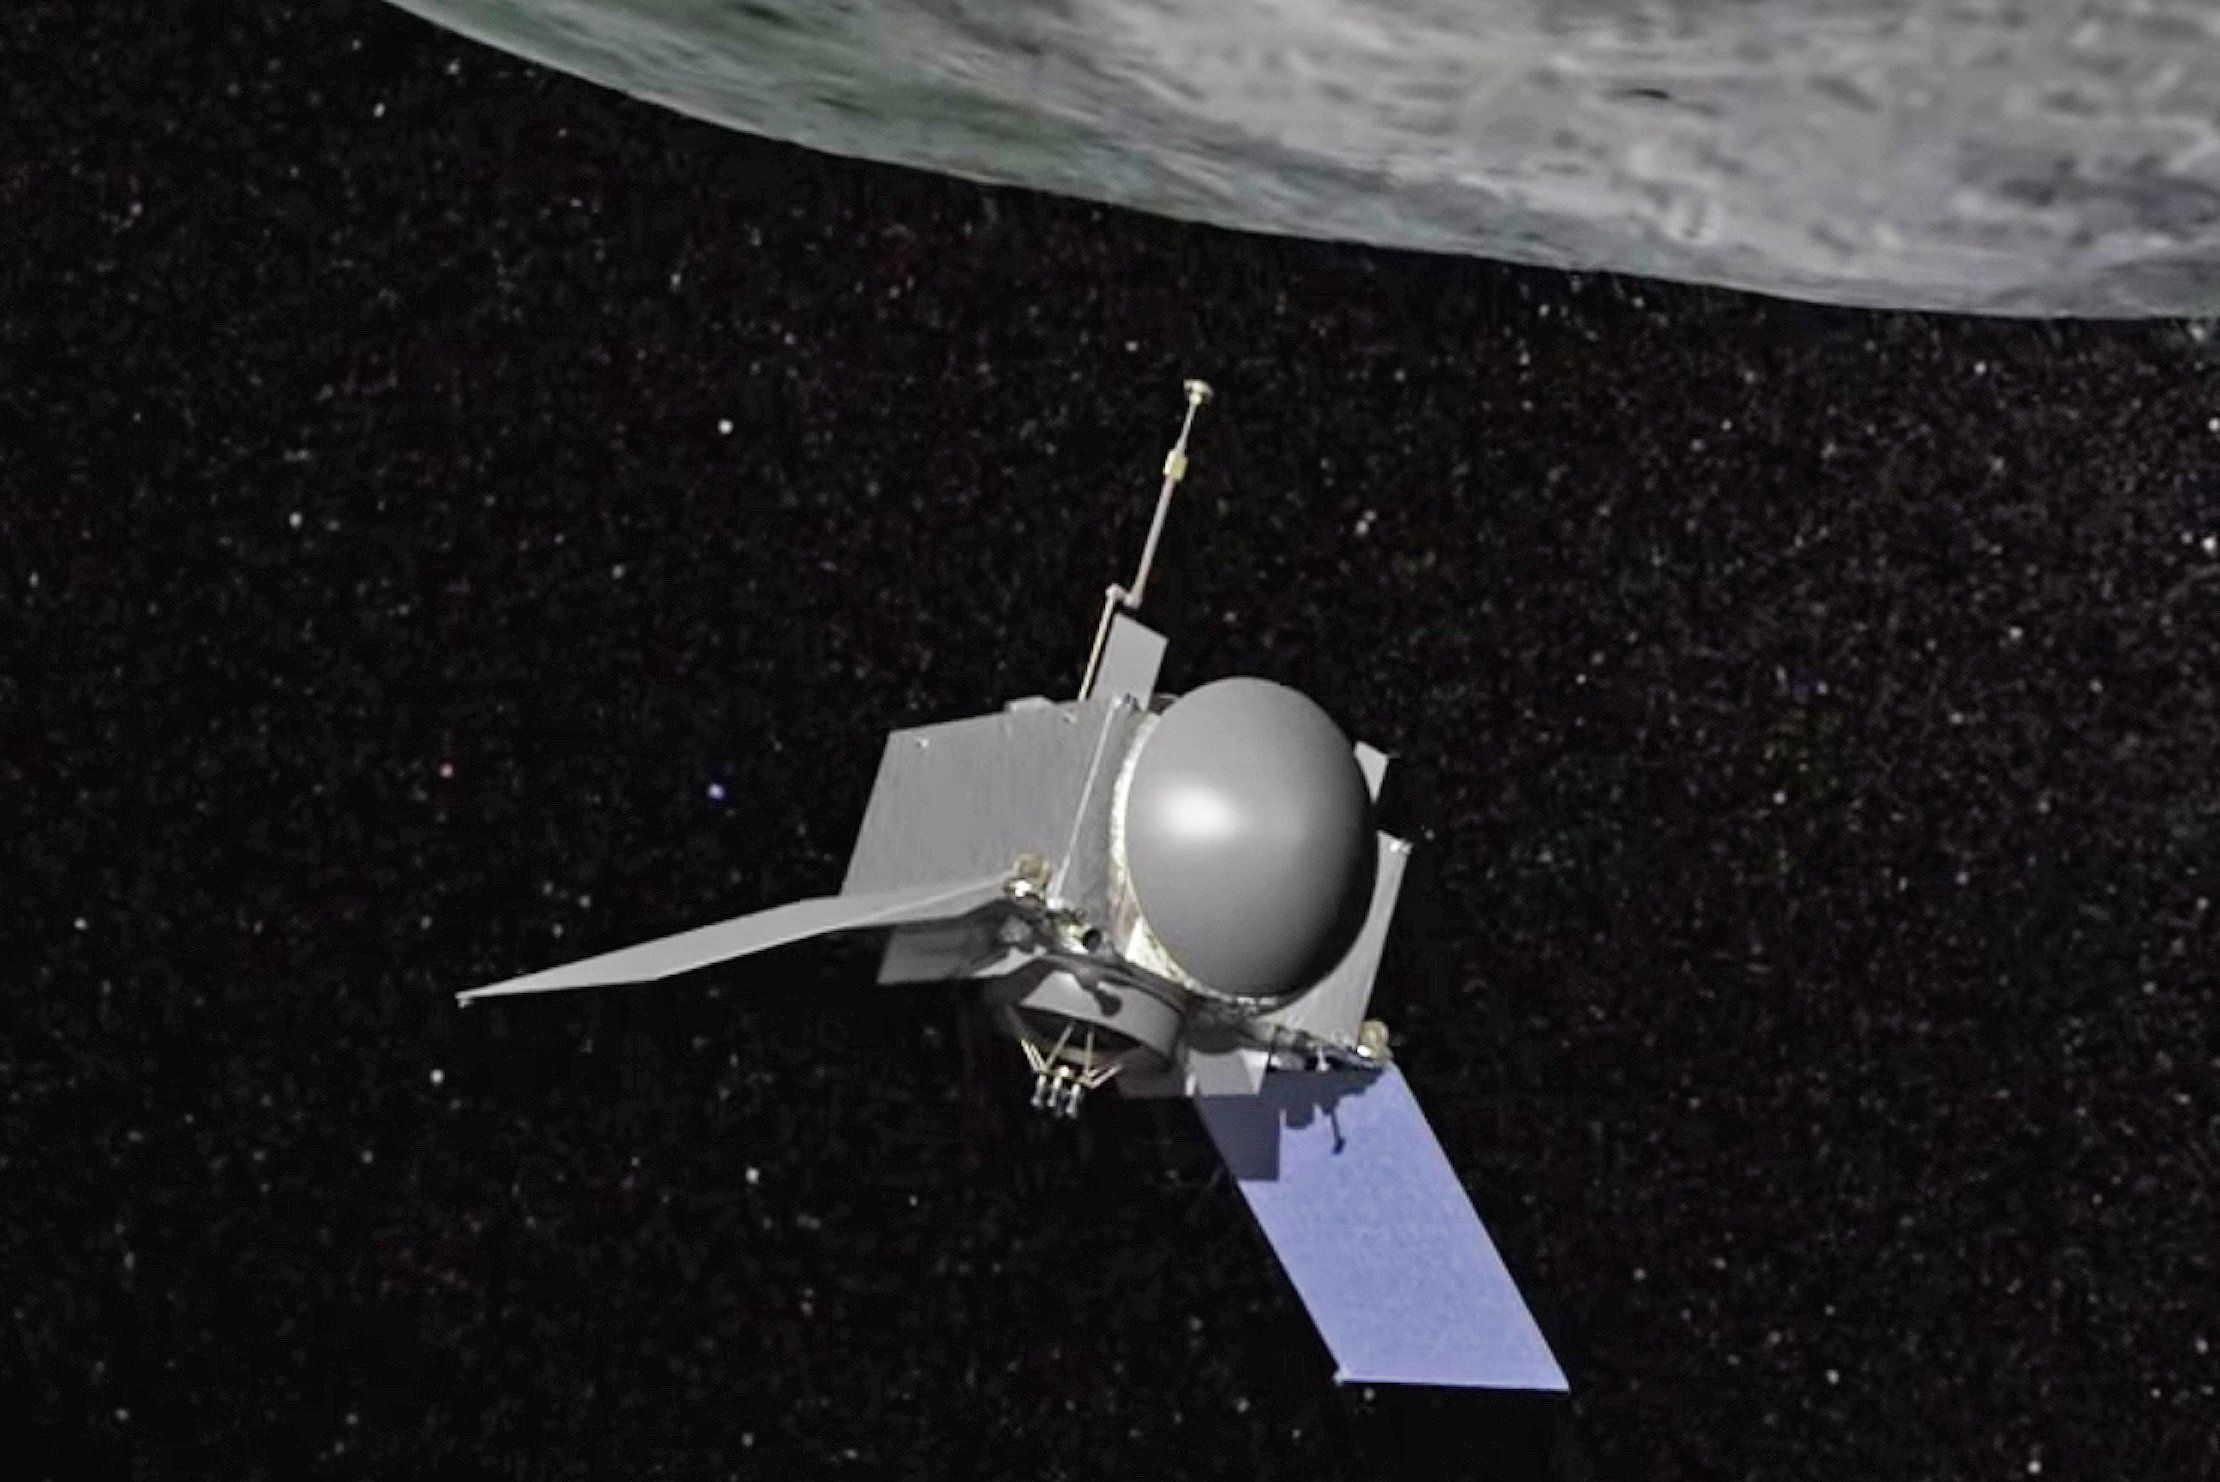 Animation still of OSIRIS-REx spacecraft preparing to collect a soil sample from asteroid Bennu, before returning to Earth.